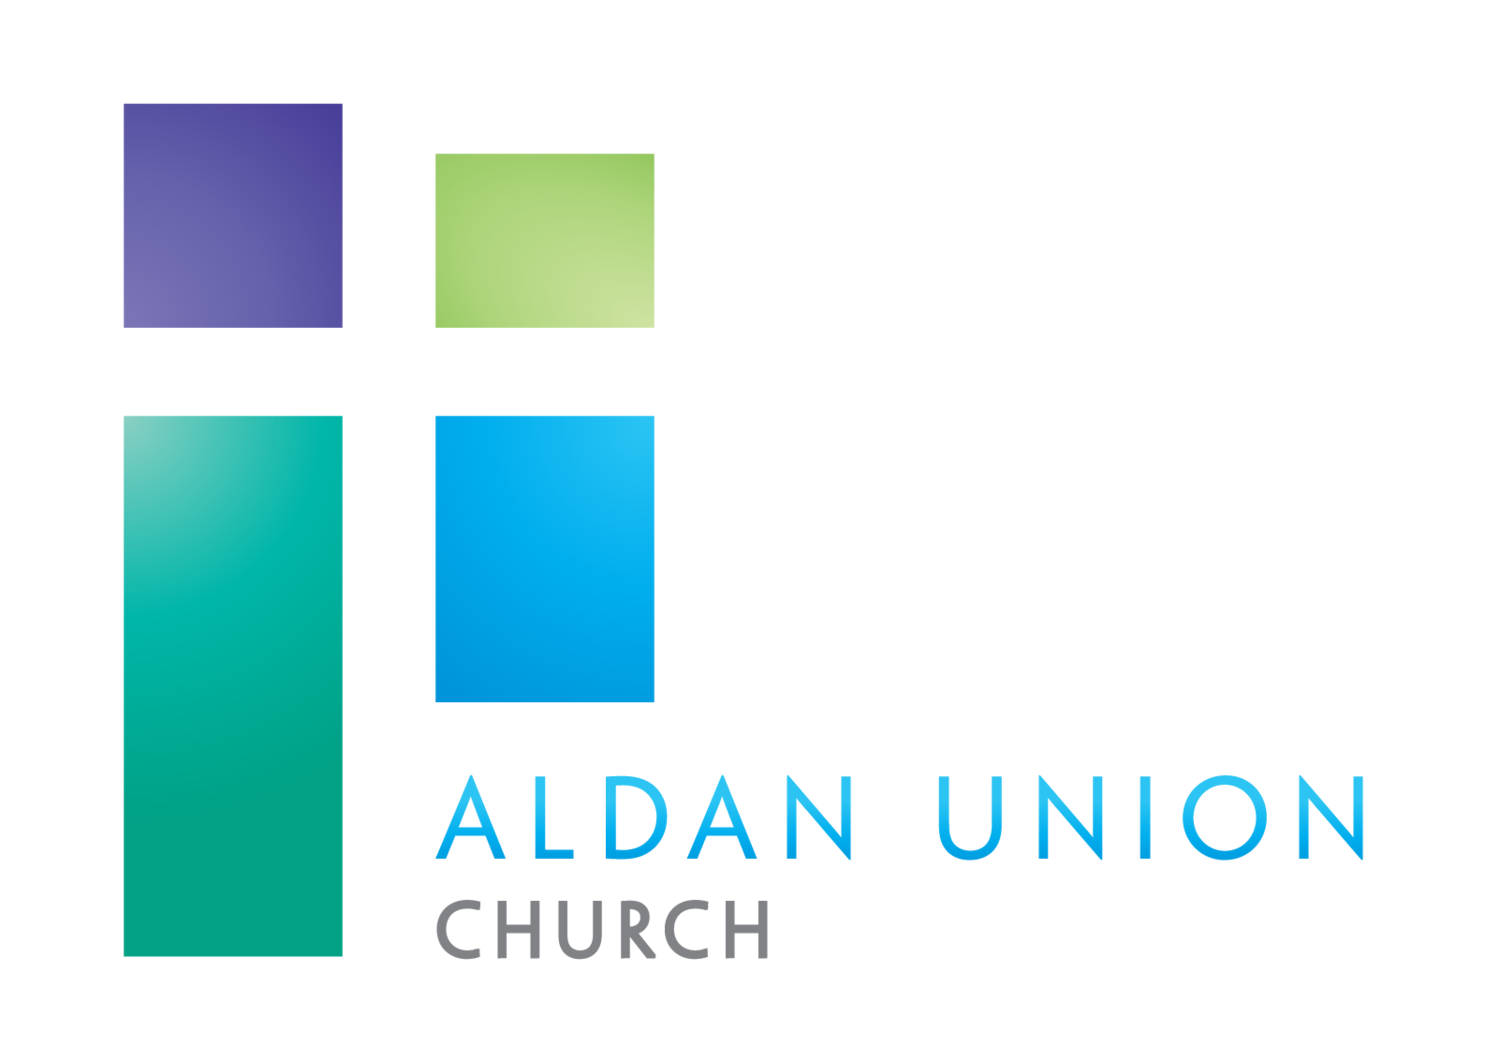 Aldan Union Church